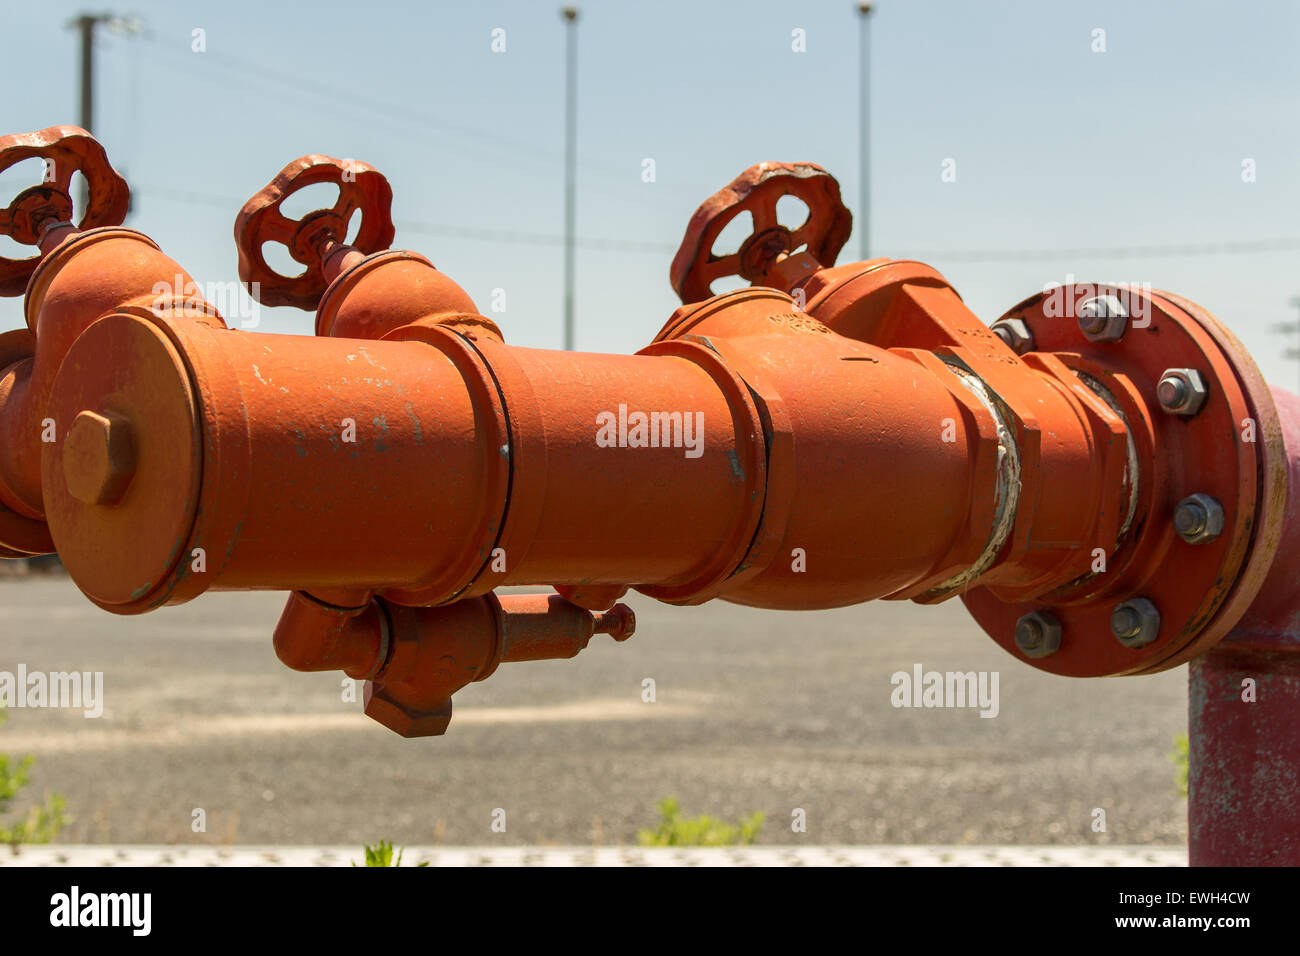 Fire hydrants, fire hoses connecting place. - Stock Image